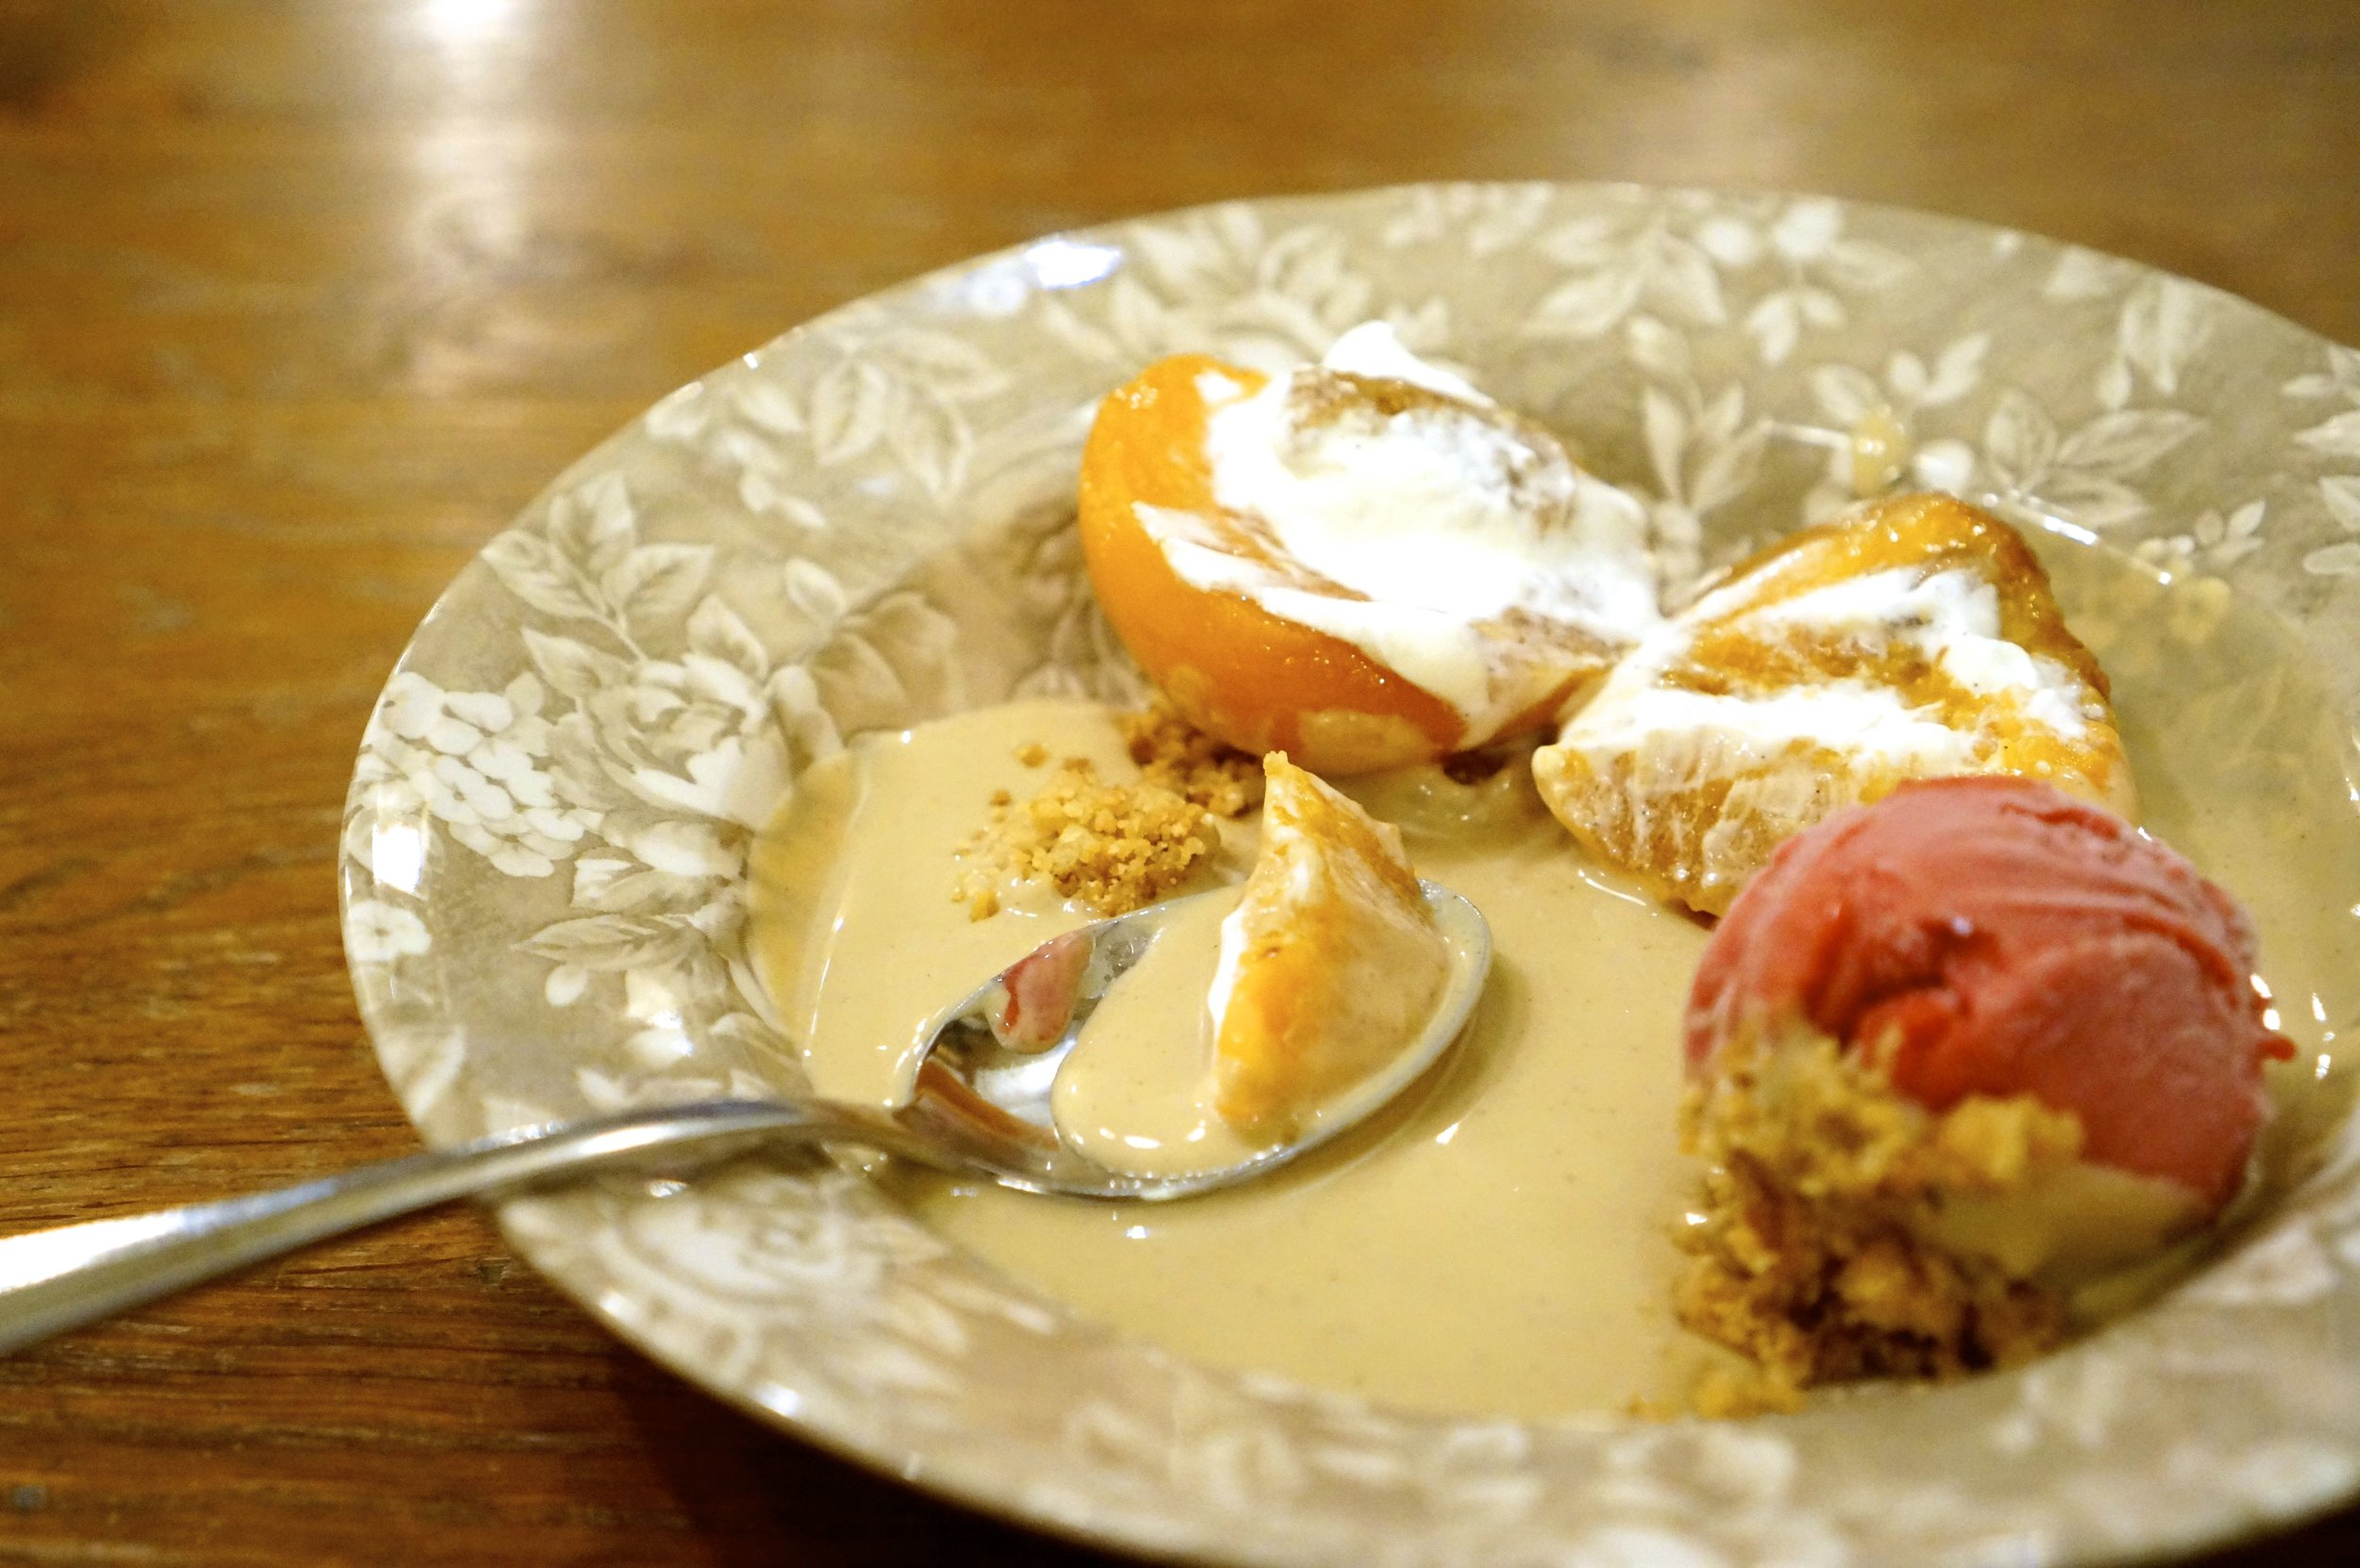 Roasted peach and hazelnut cream with sorbet.